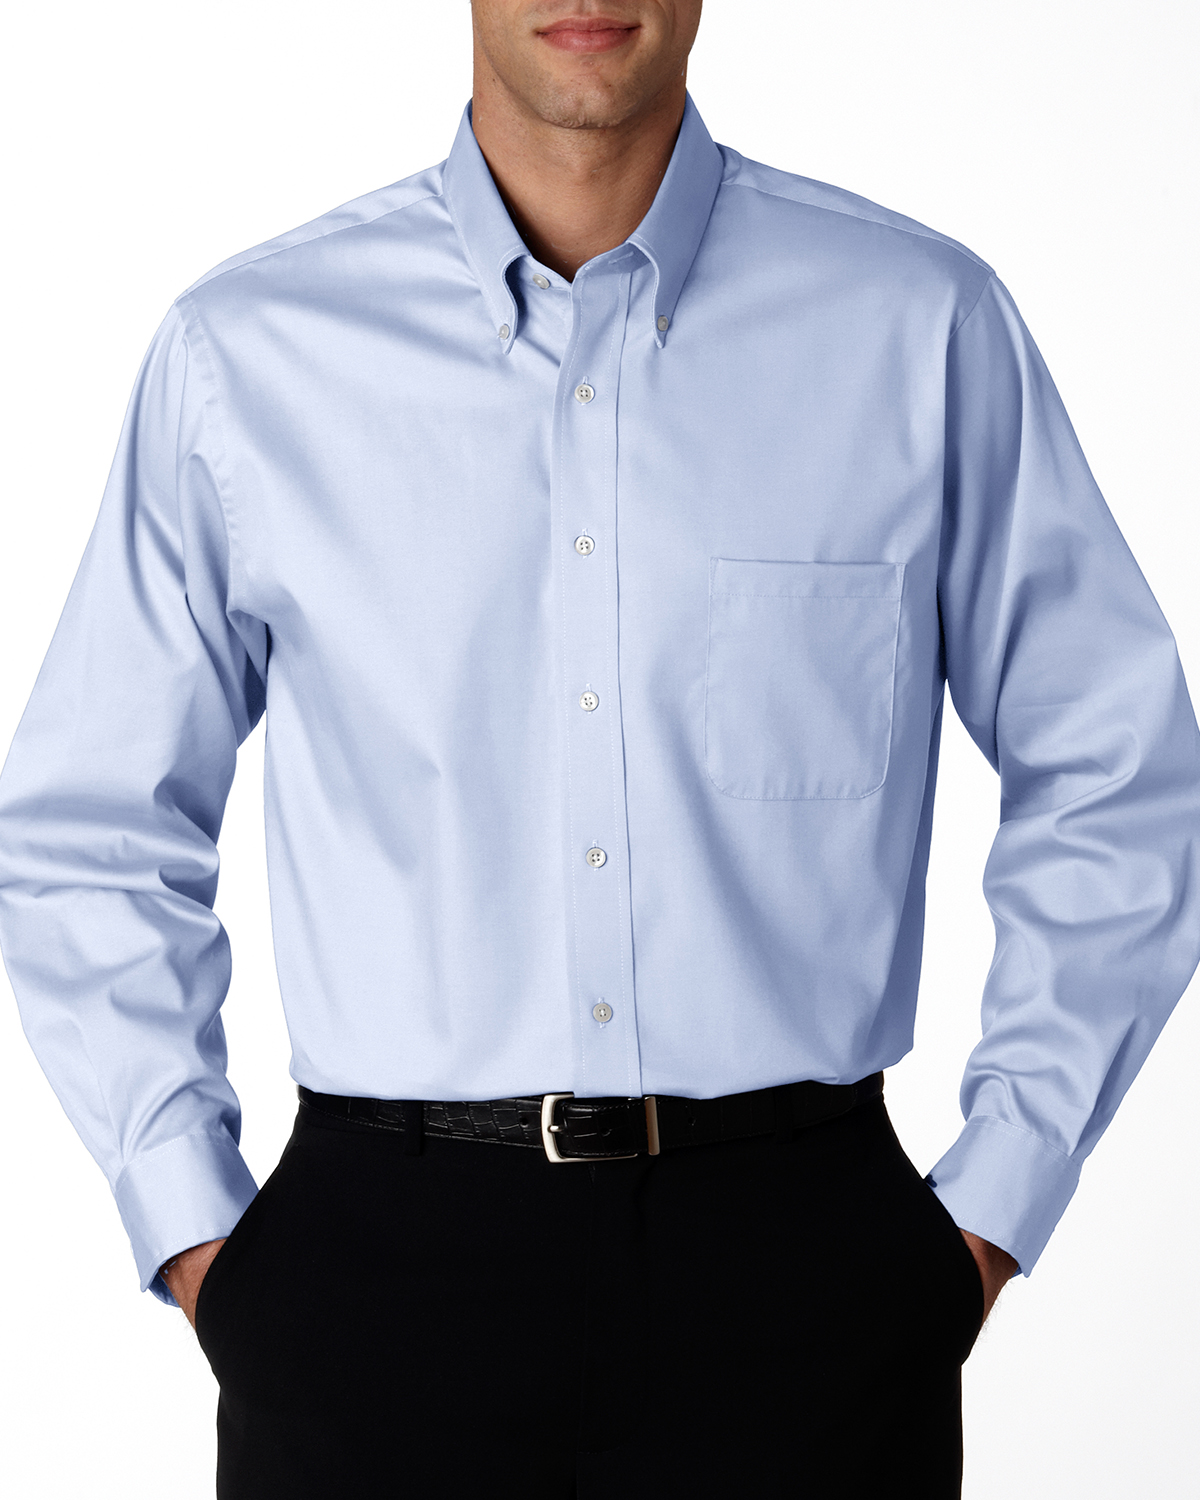 Van Heusen - 13v0067 Van Heusen Mens Wrinkle-Resistant Pinpoint Oxford Shirt, Pensacola, Embroidery, Screen Printing, Logo Masters International